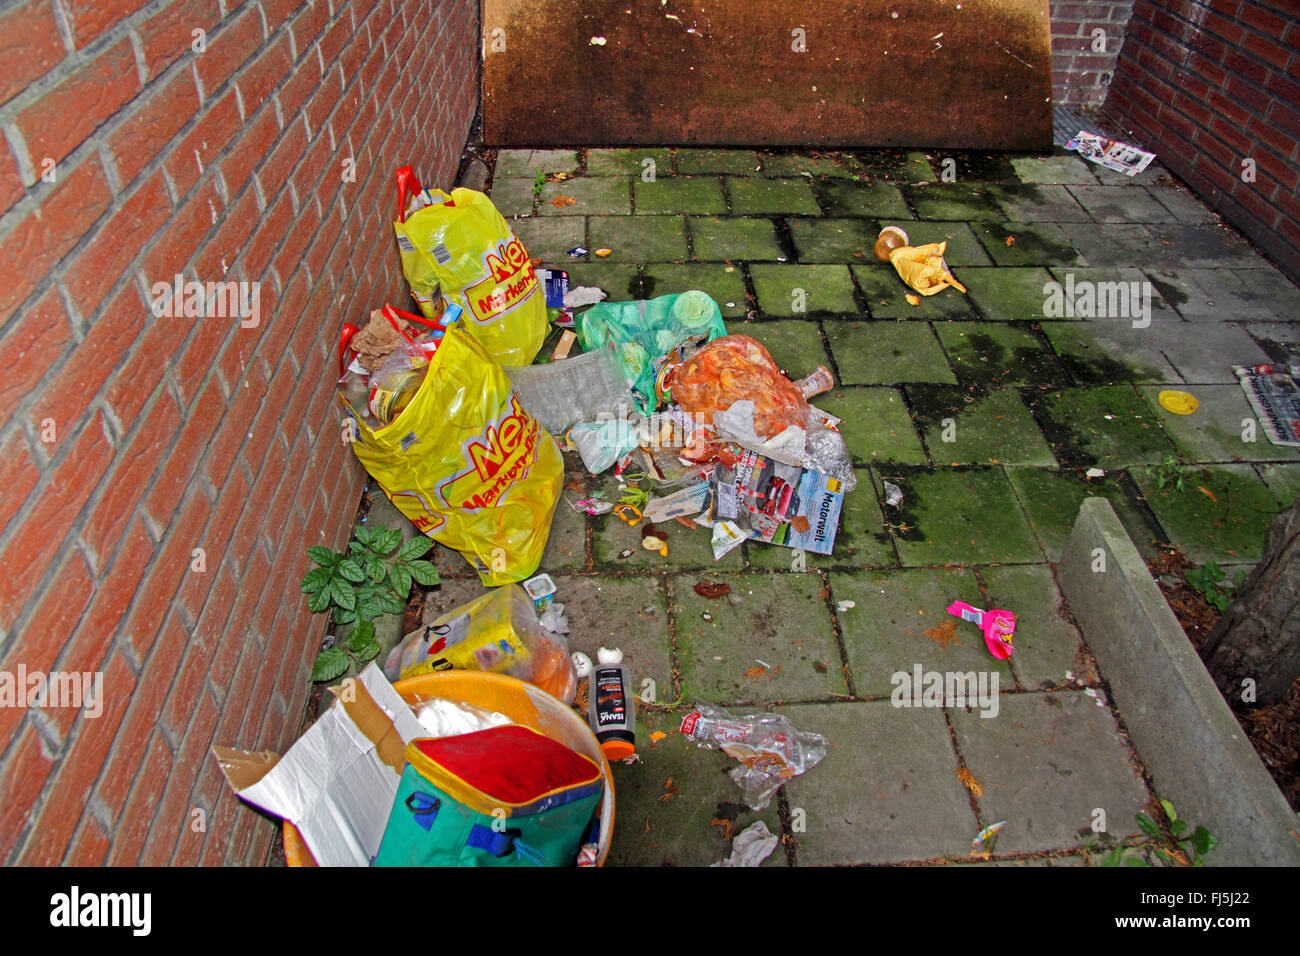 plastic bags full of waste between to houses, Germany - Stock Image